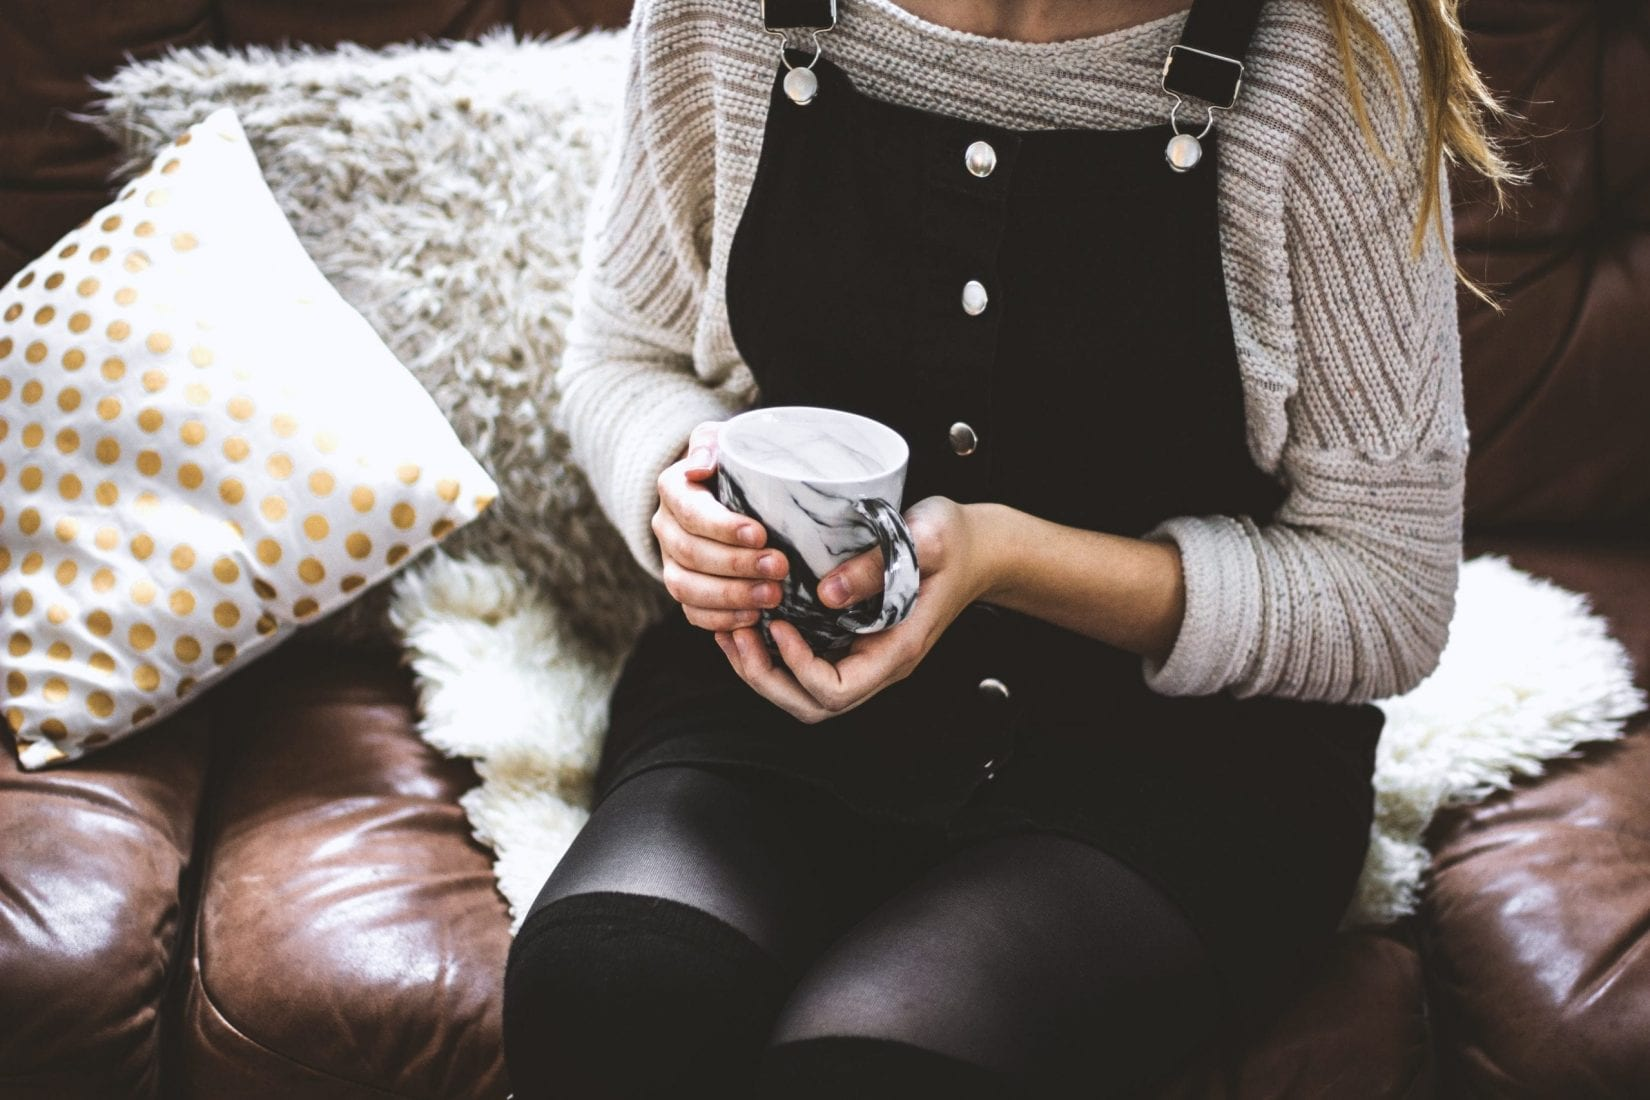 woman-holding-mug-therapy-counselling-counsellor-kelowna-anxiety-stress-depression-student-university-life-guidance-calm-hope-tea-coffee-help-work-relationships-begin